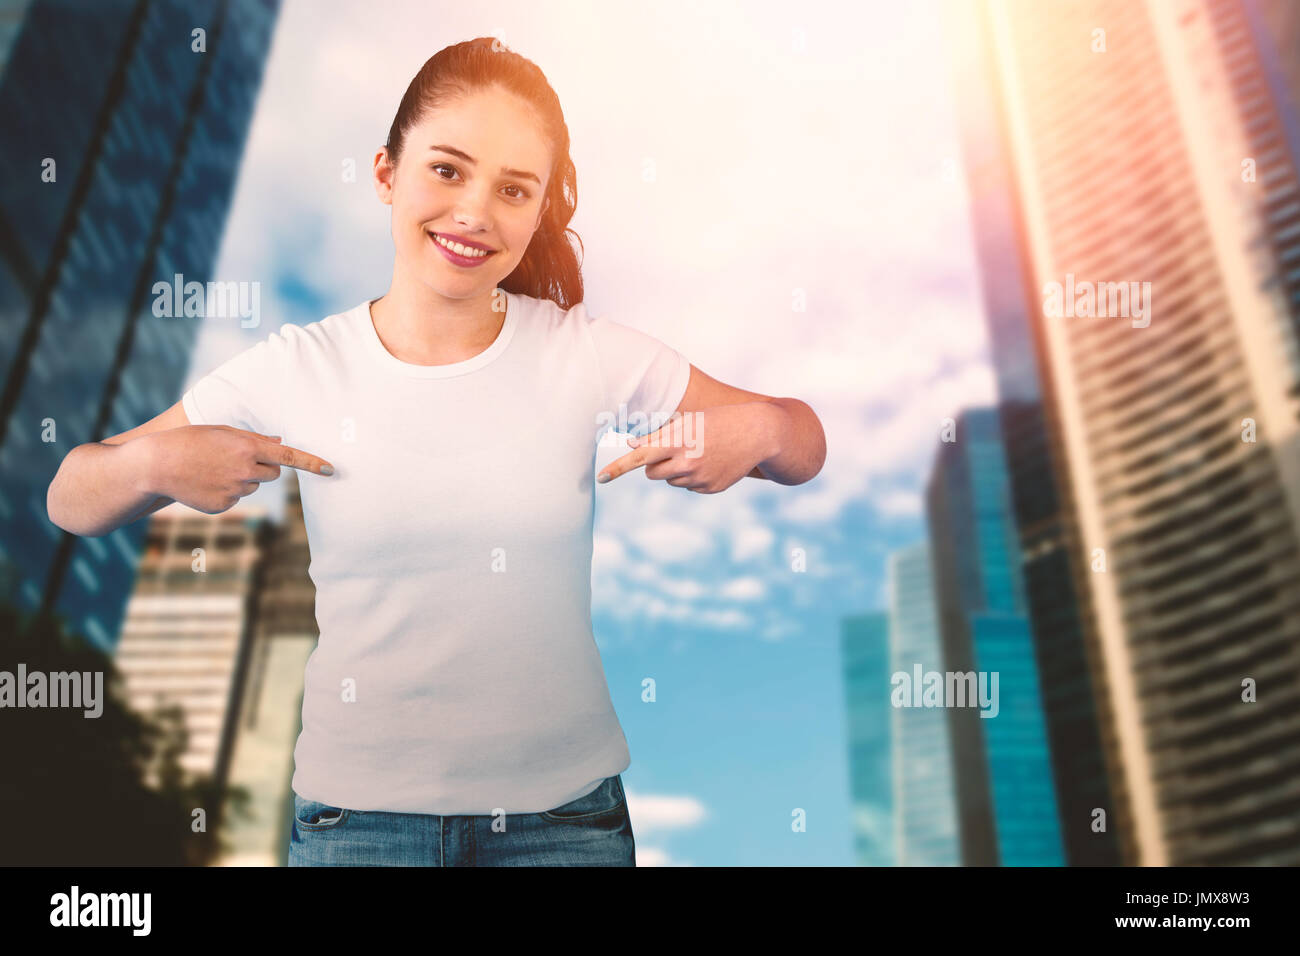 Portrait of smiling brunette woman in front of white background against city Stock Photo